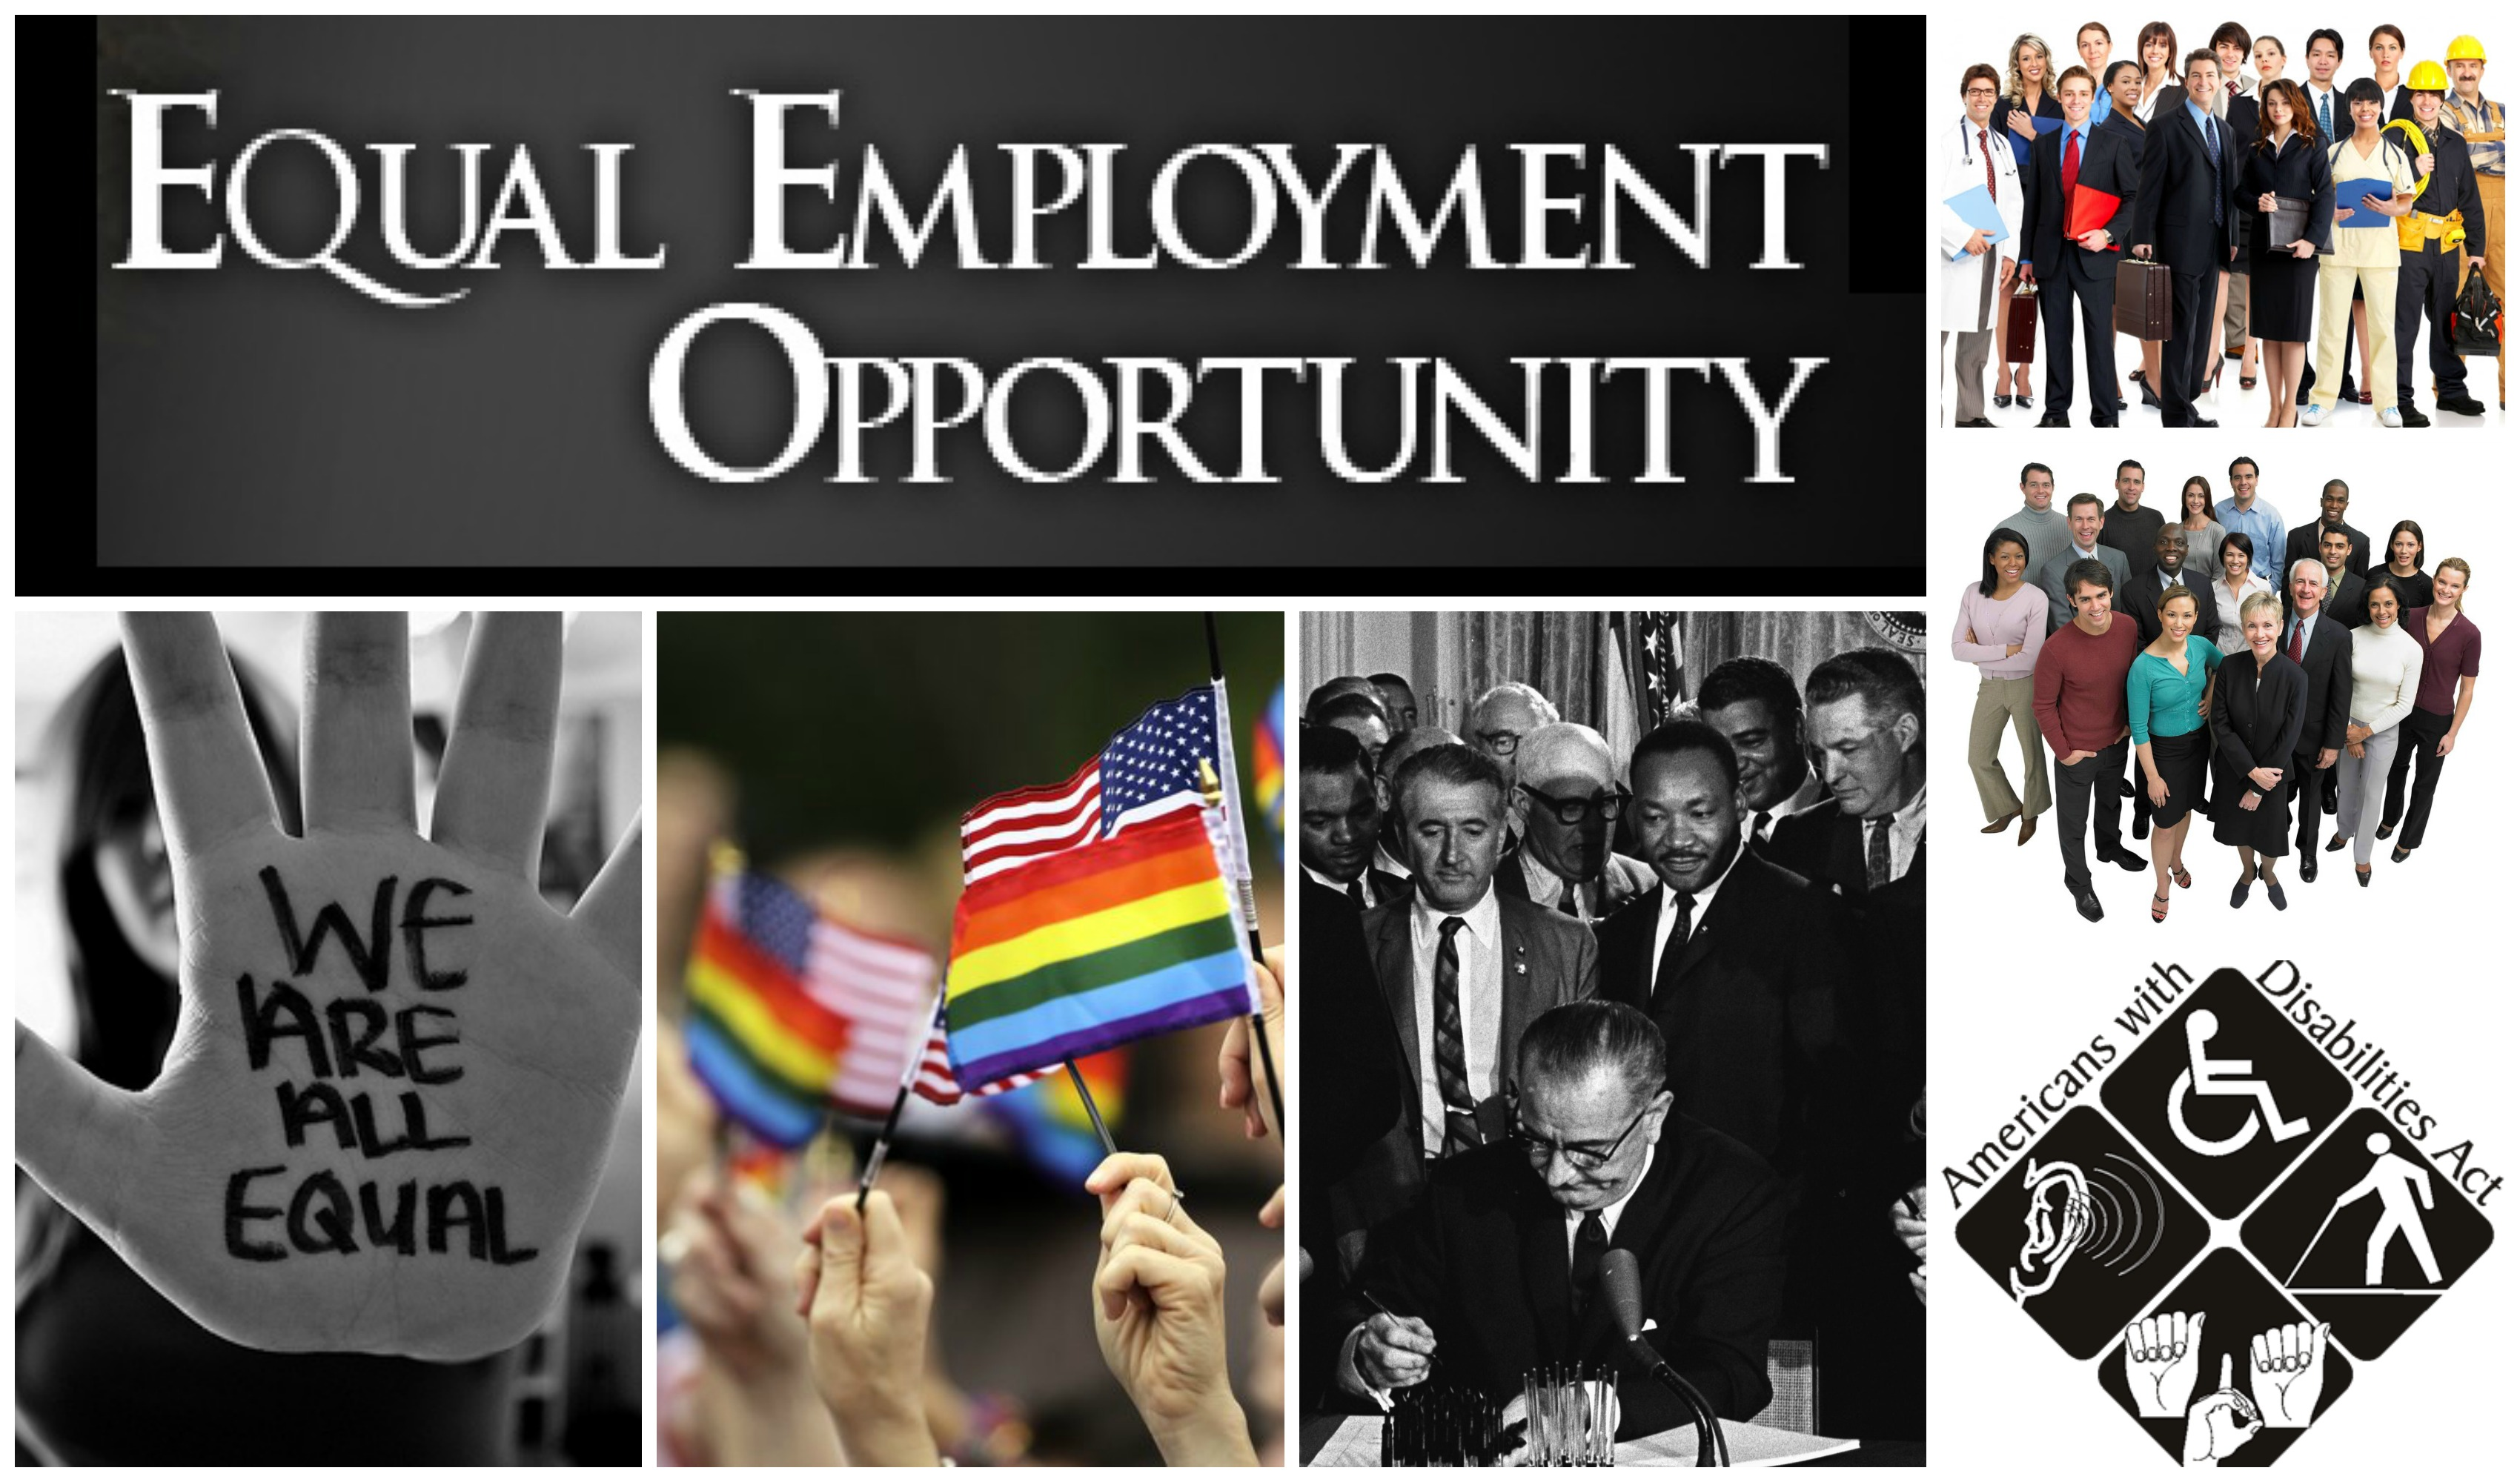 equal opportunity employment In implementing the requirements of equal employment opportunity commission's (eeoc) equal employment opportunity management directive 715, the department of homeland security's headquarters office of equal employment opportunity strives to ensure that all employees and applicants for employment enjoy equality of opportunity and employment.